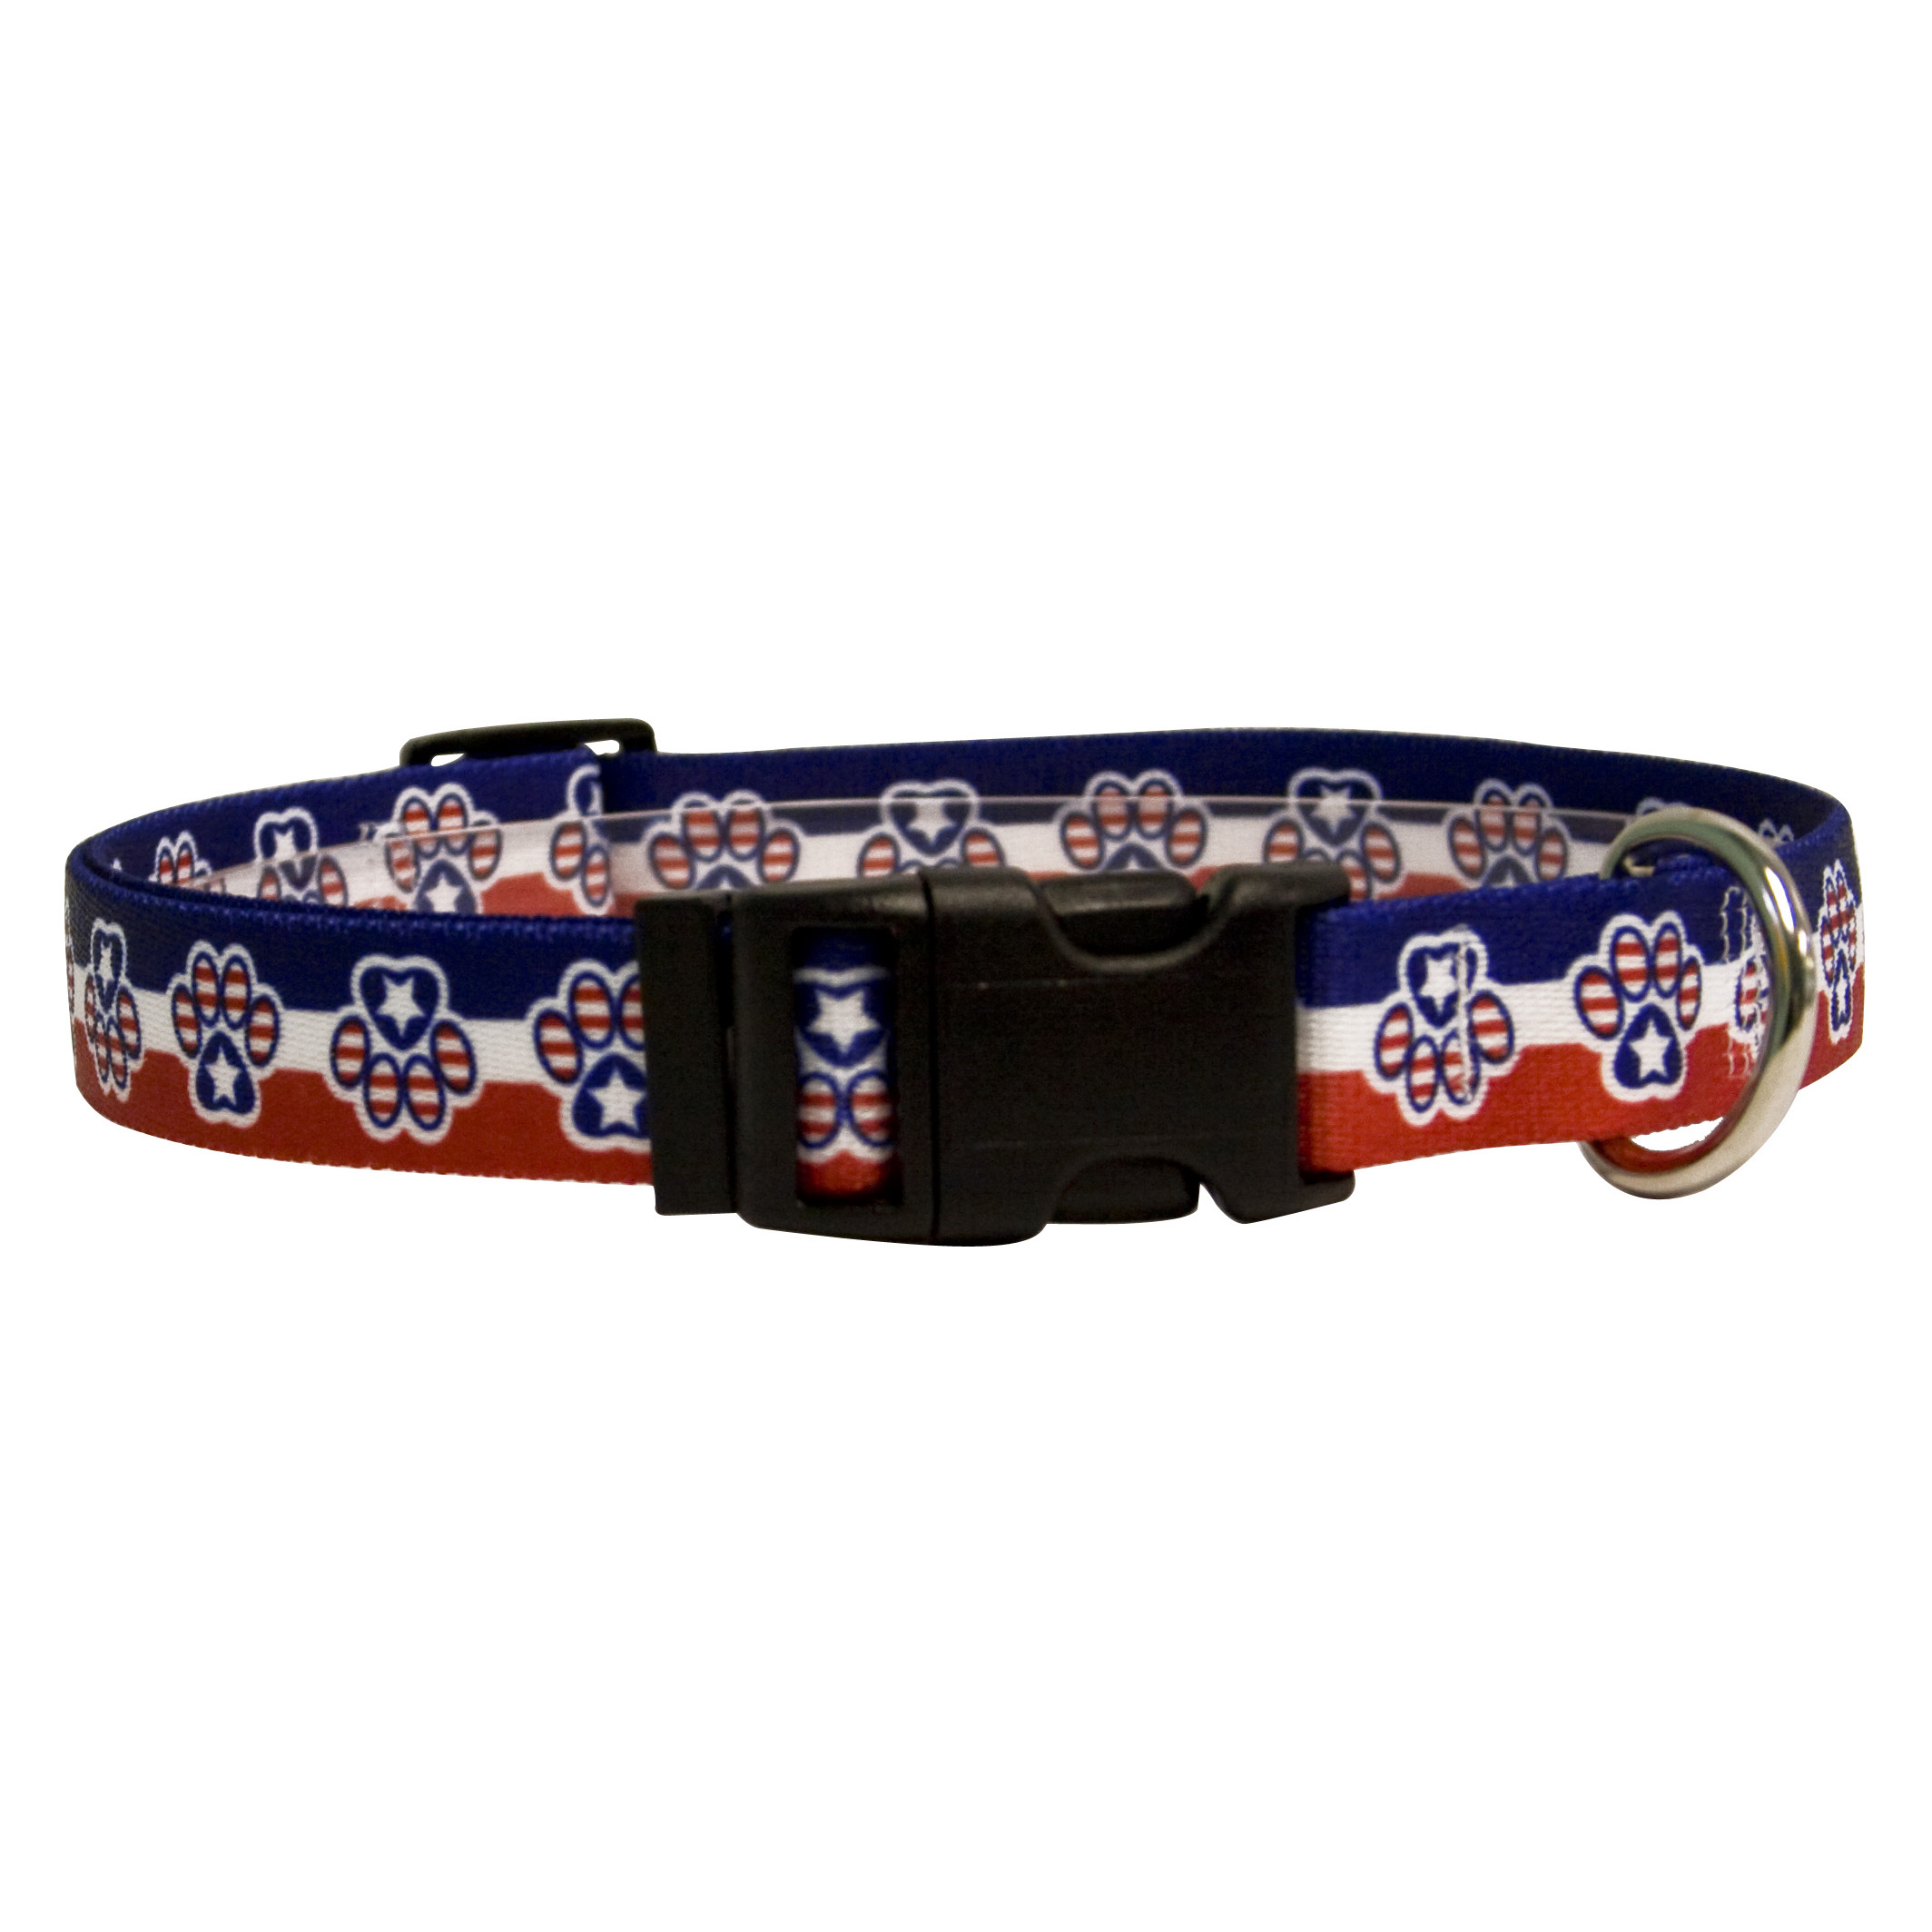 Yellow Dog Design Patriotic Paws Collar, Harness & Leash